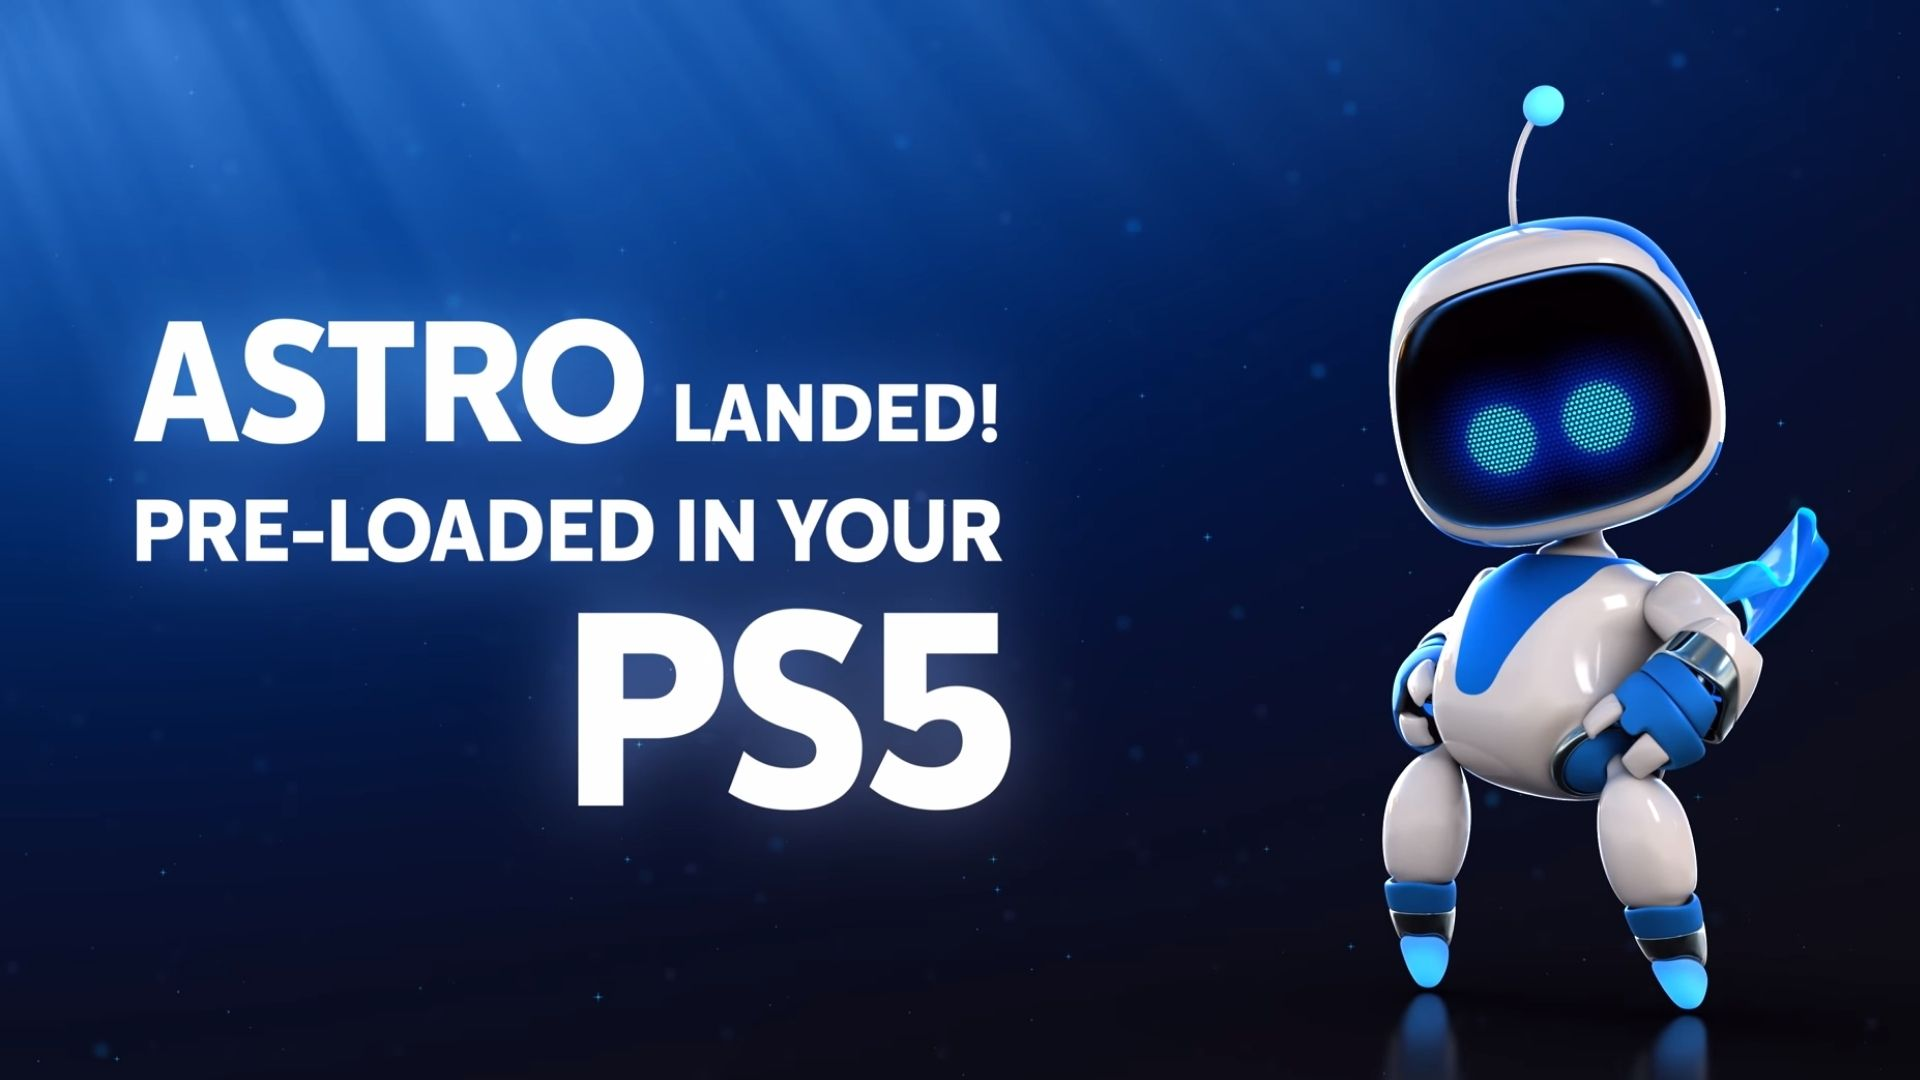 astros playroom comes installed on PS5